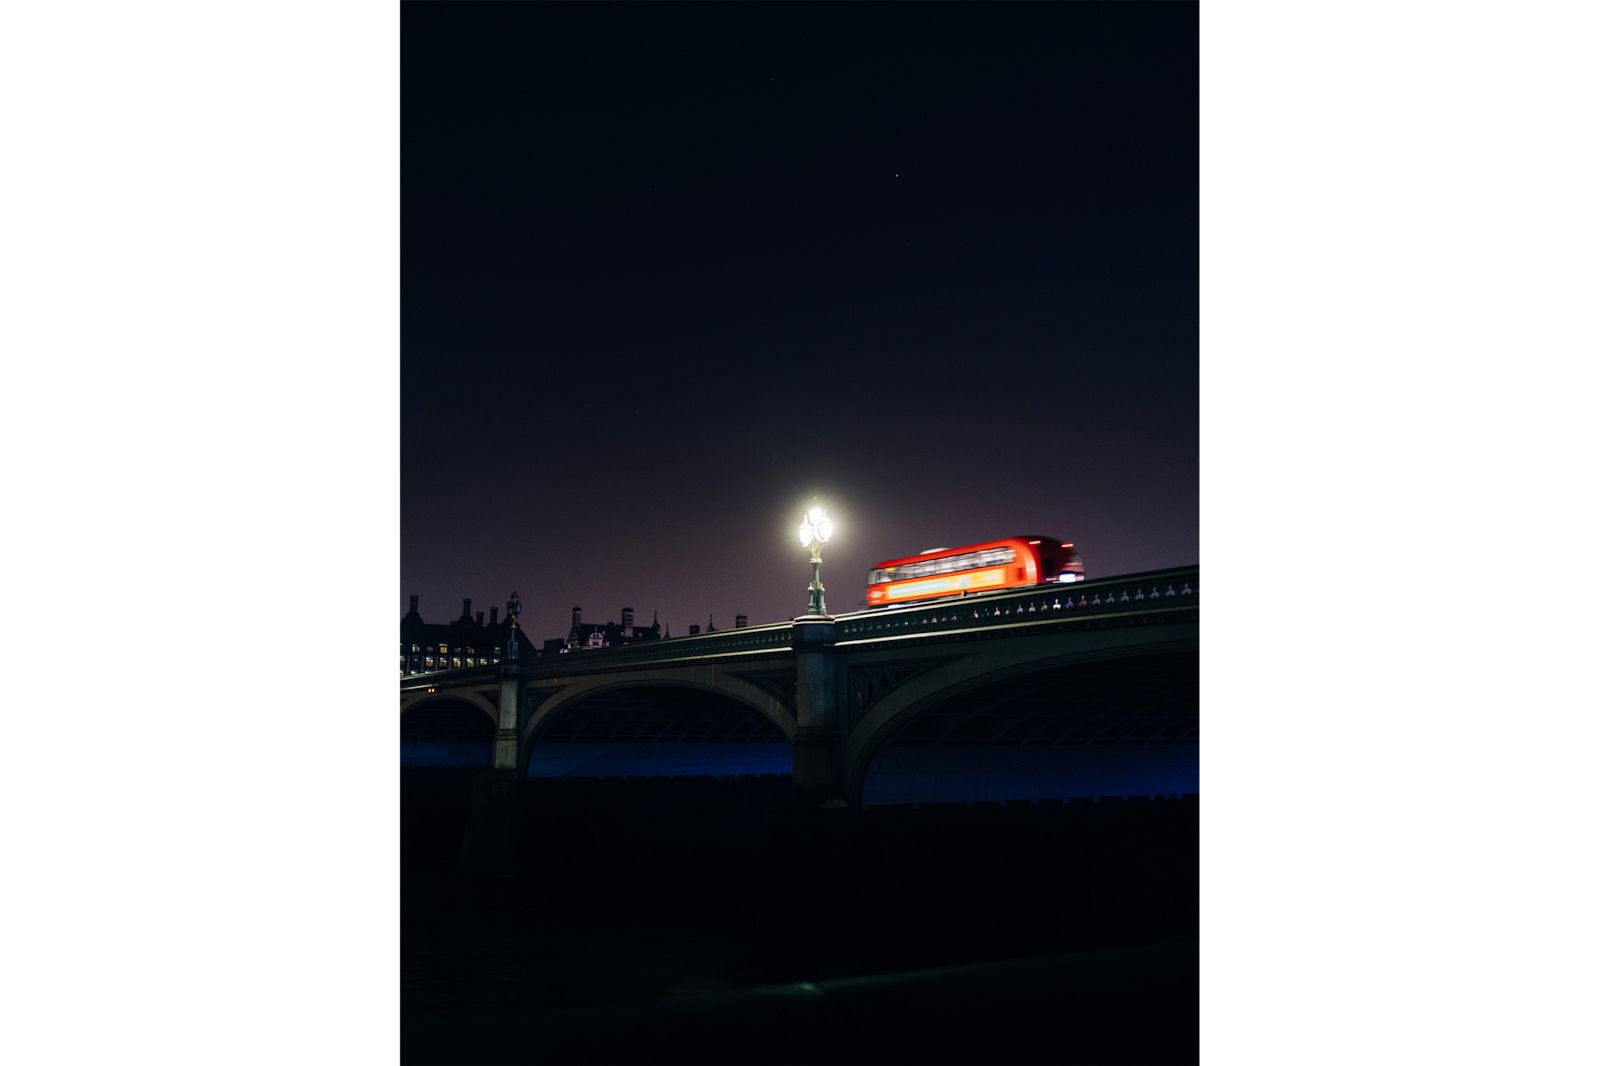 red bus going over bridge alpha 7RIII